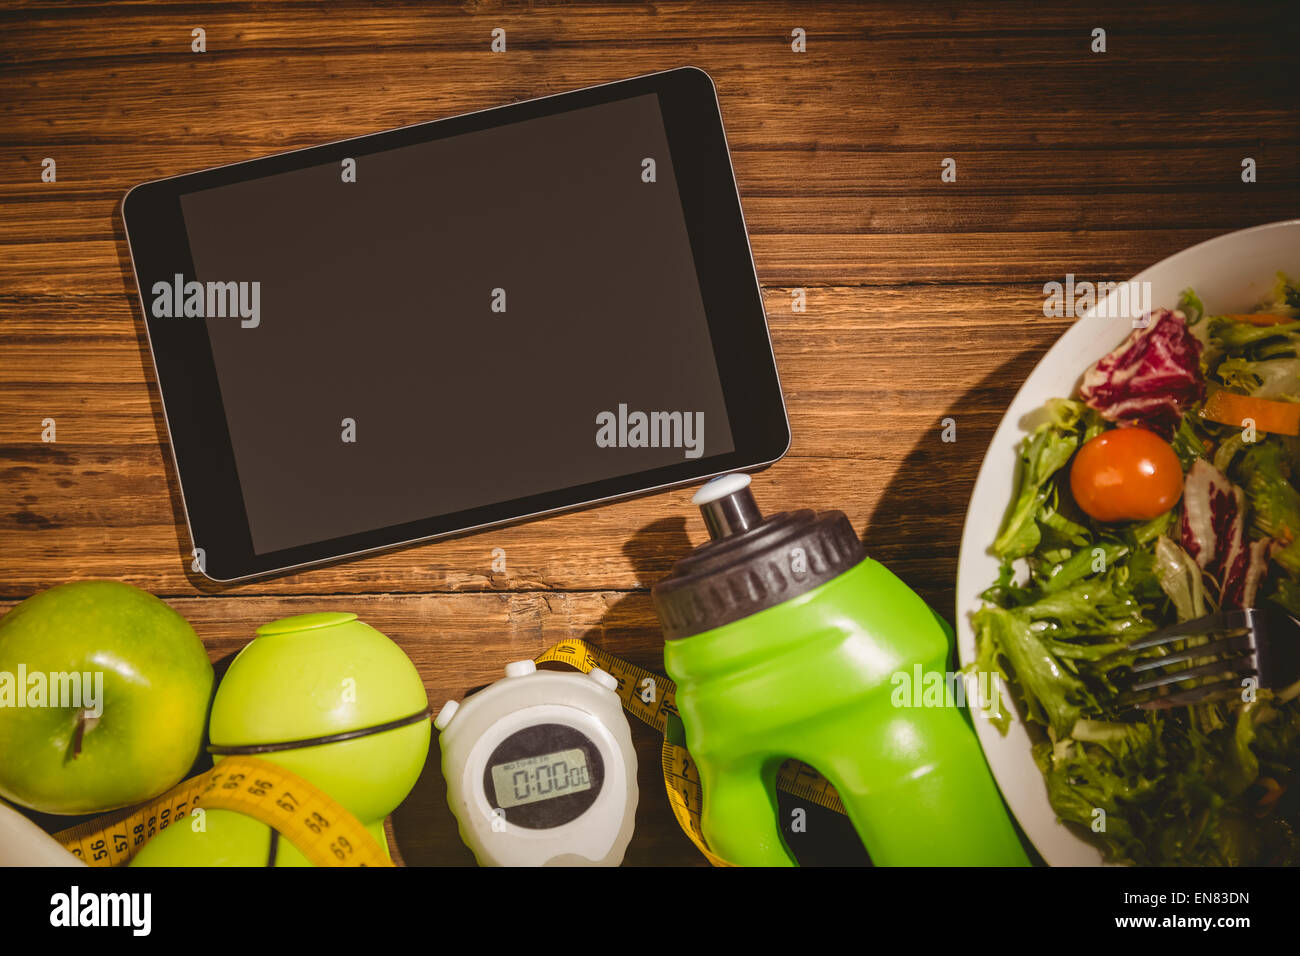 Tablet with indicators of healthy lifestyle - Stock Image